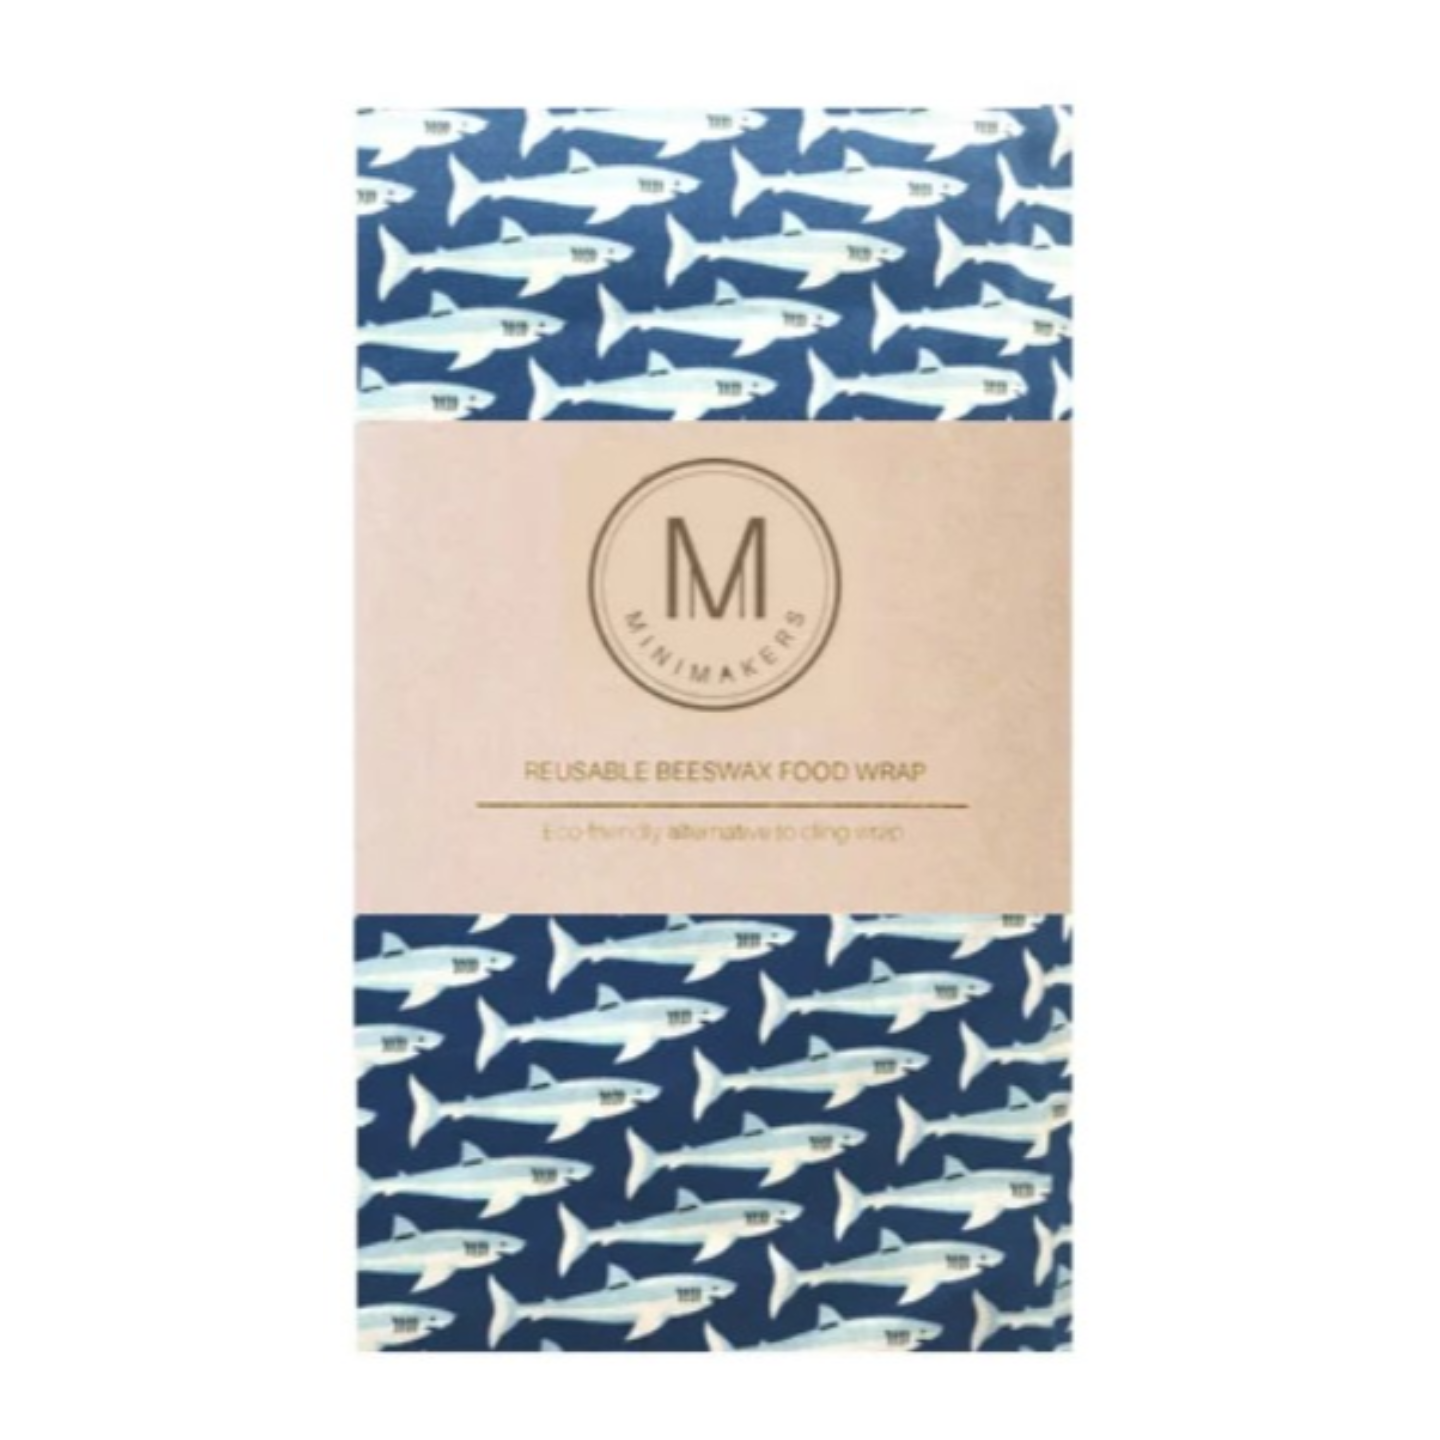 SHARKNADO Premium Cotton Beeswax Wrap Minimakers